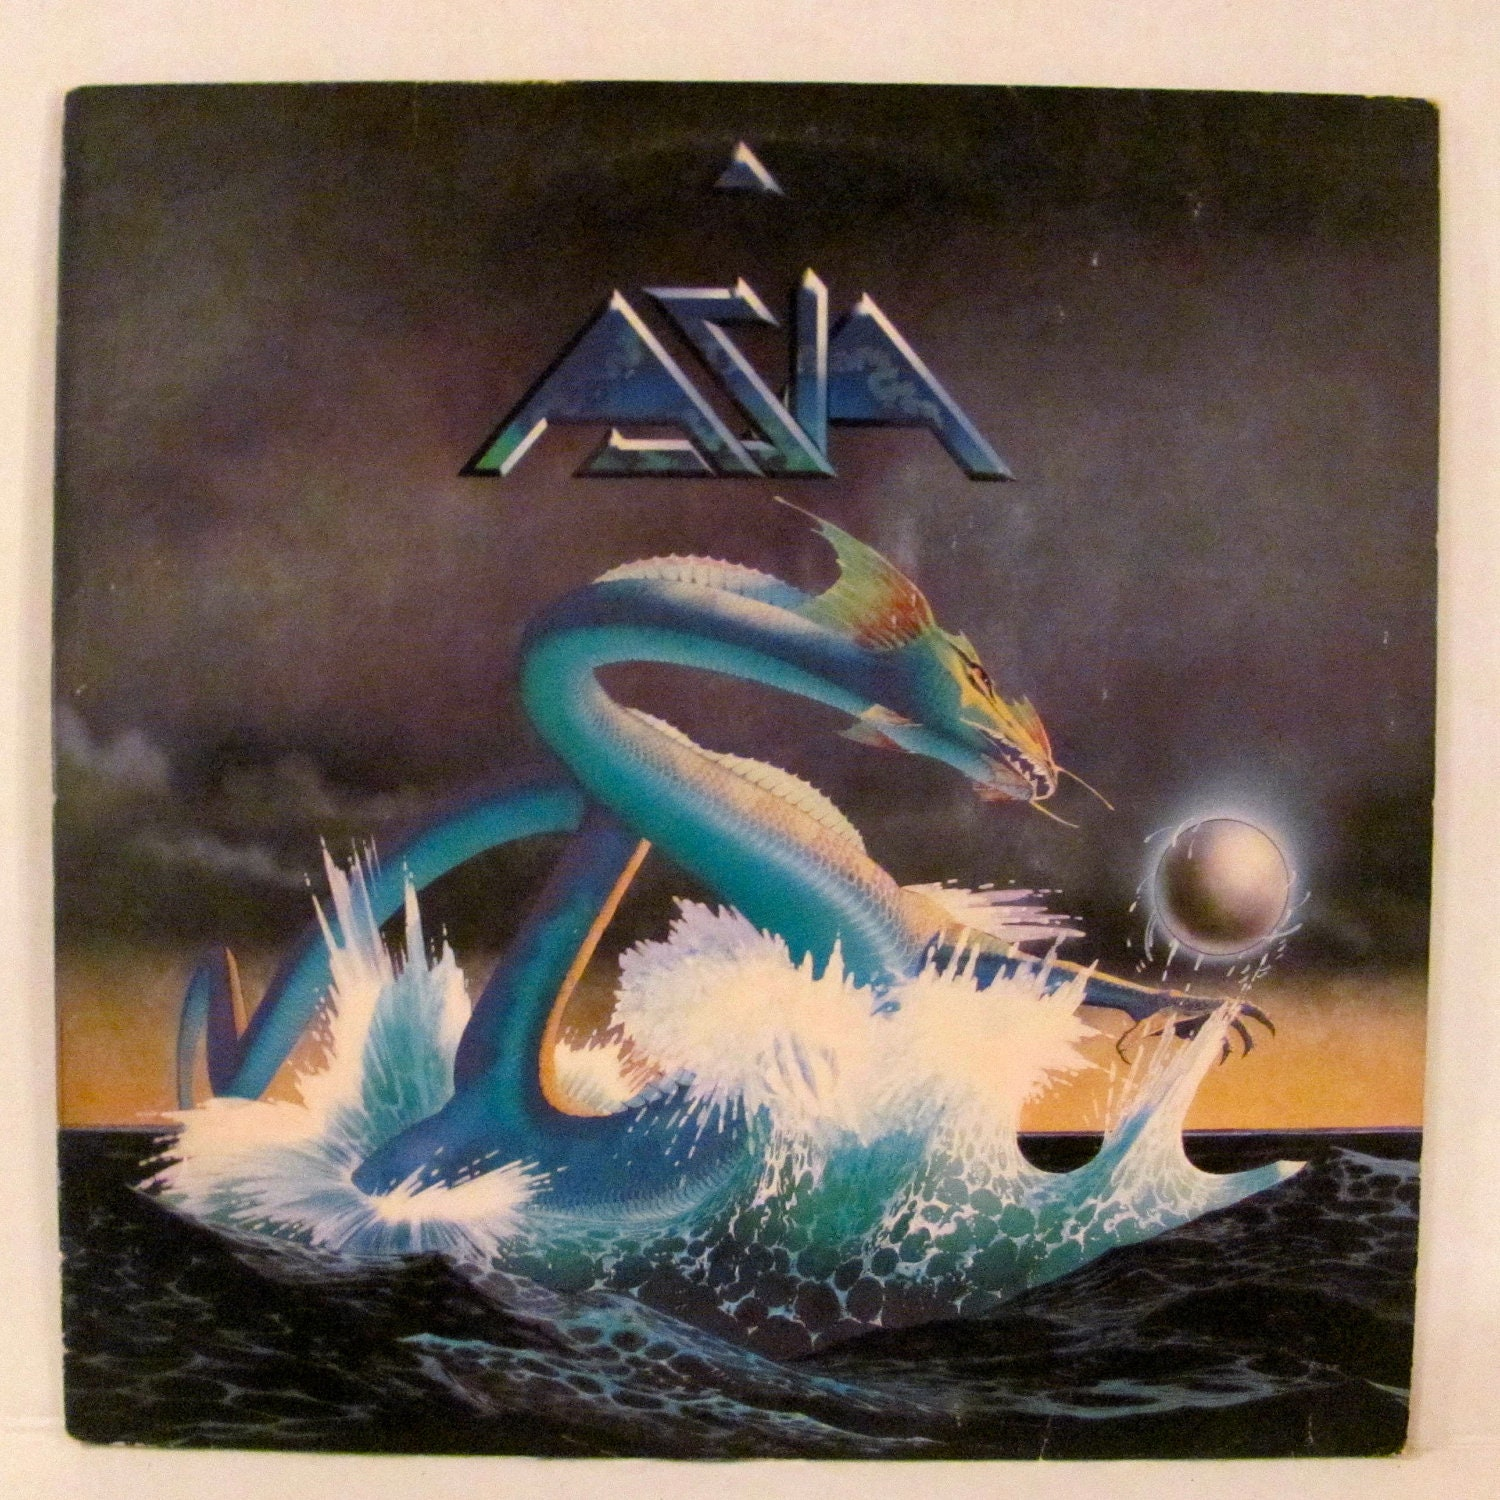 Asia Record Album Cover And Record By RevivedArt On Etsy